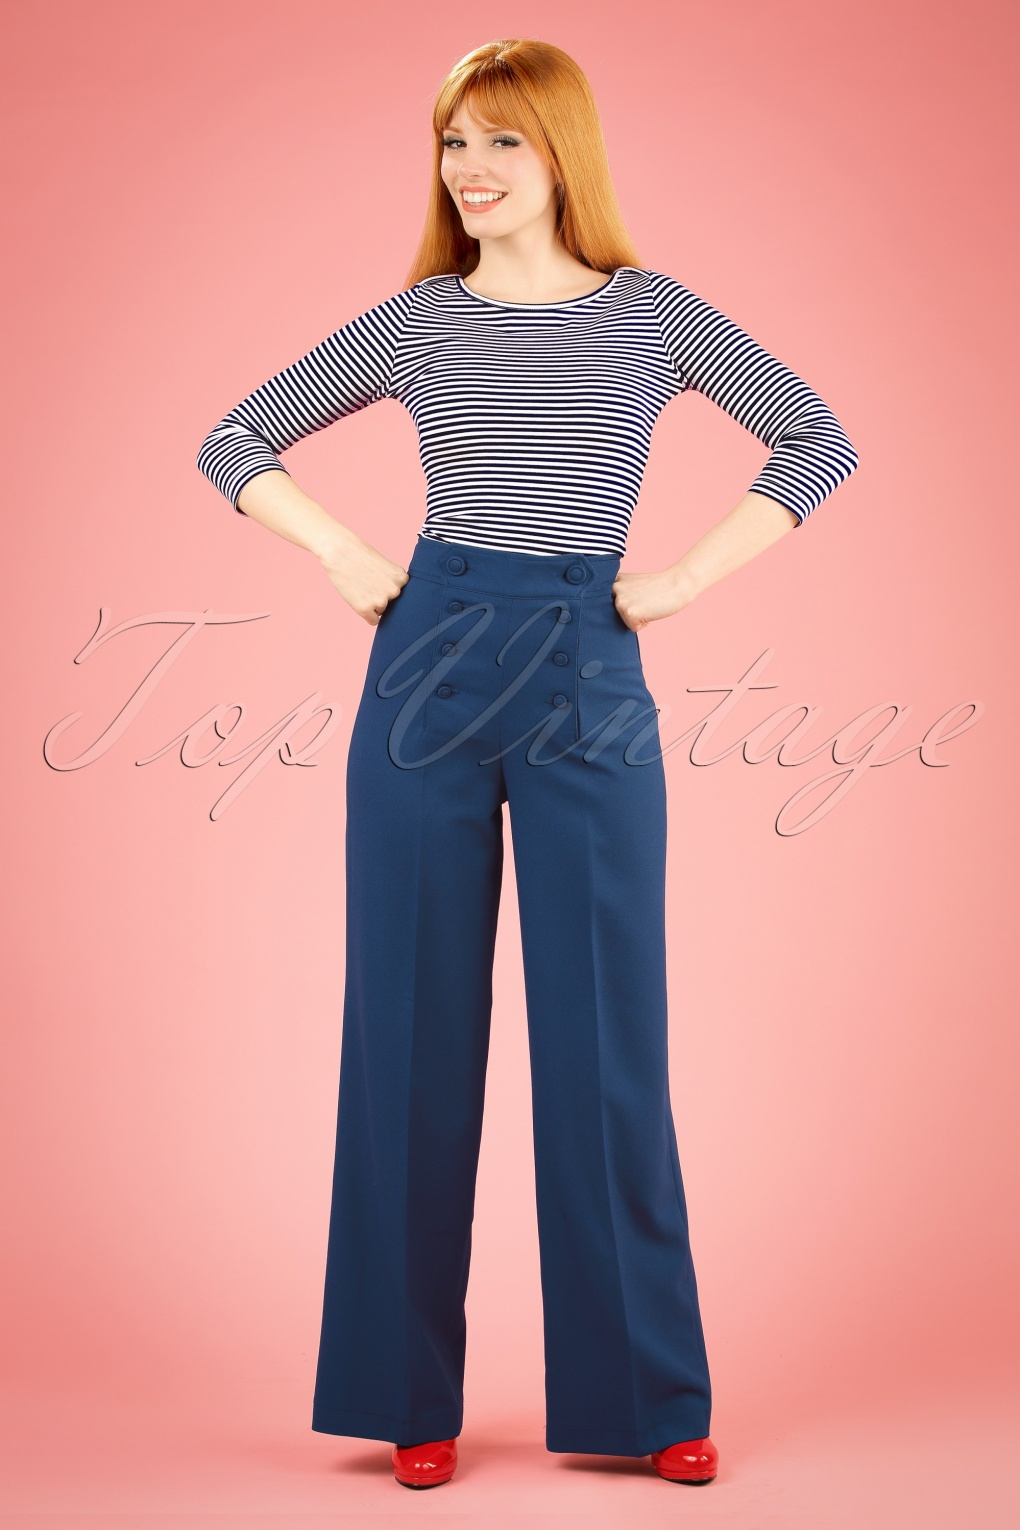 1940s Style Pants & Overalls- Wide Leg, High Waist 40s Nelly Bly Sailor Trousers in Navy £39.45 AT vintagedancer.com